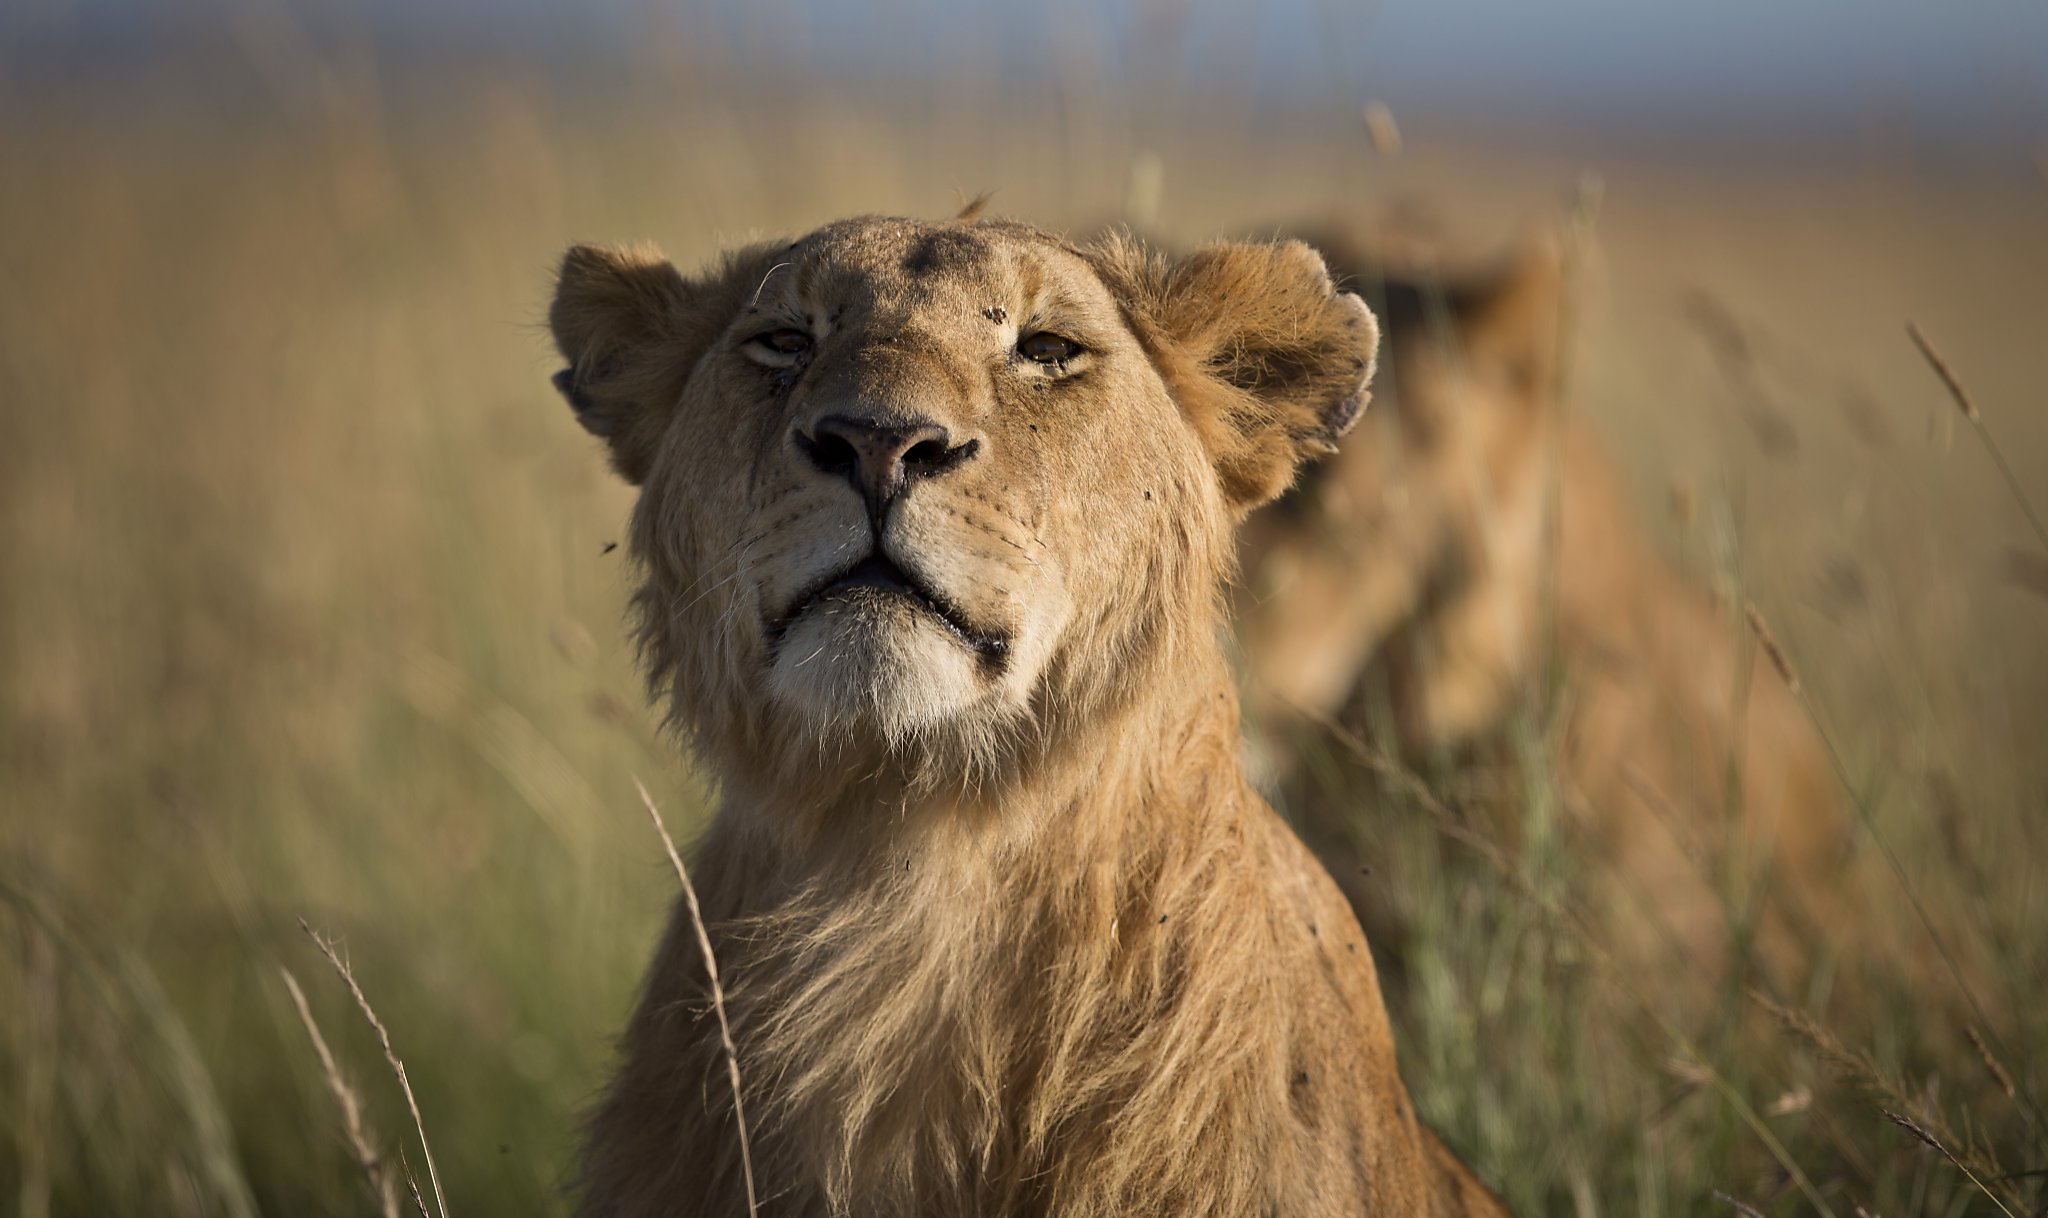 Suspected rhino poachers eaten alive by lions - SFGate